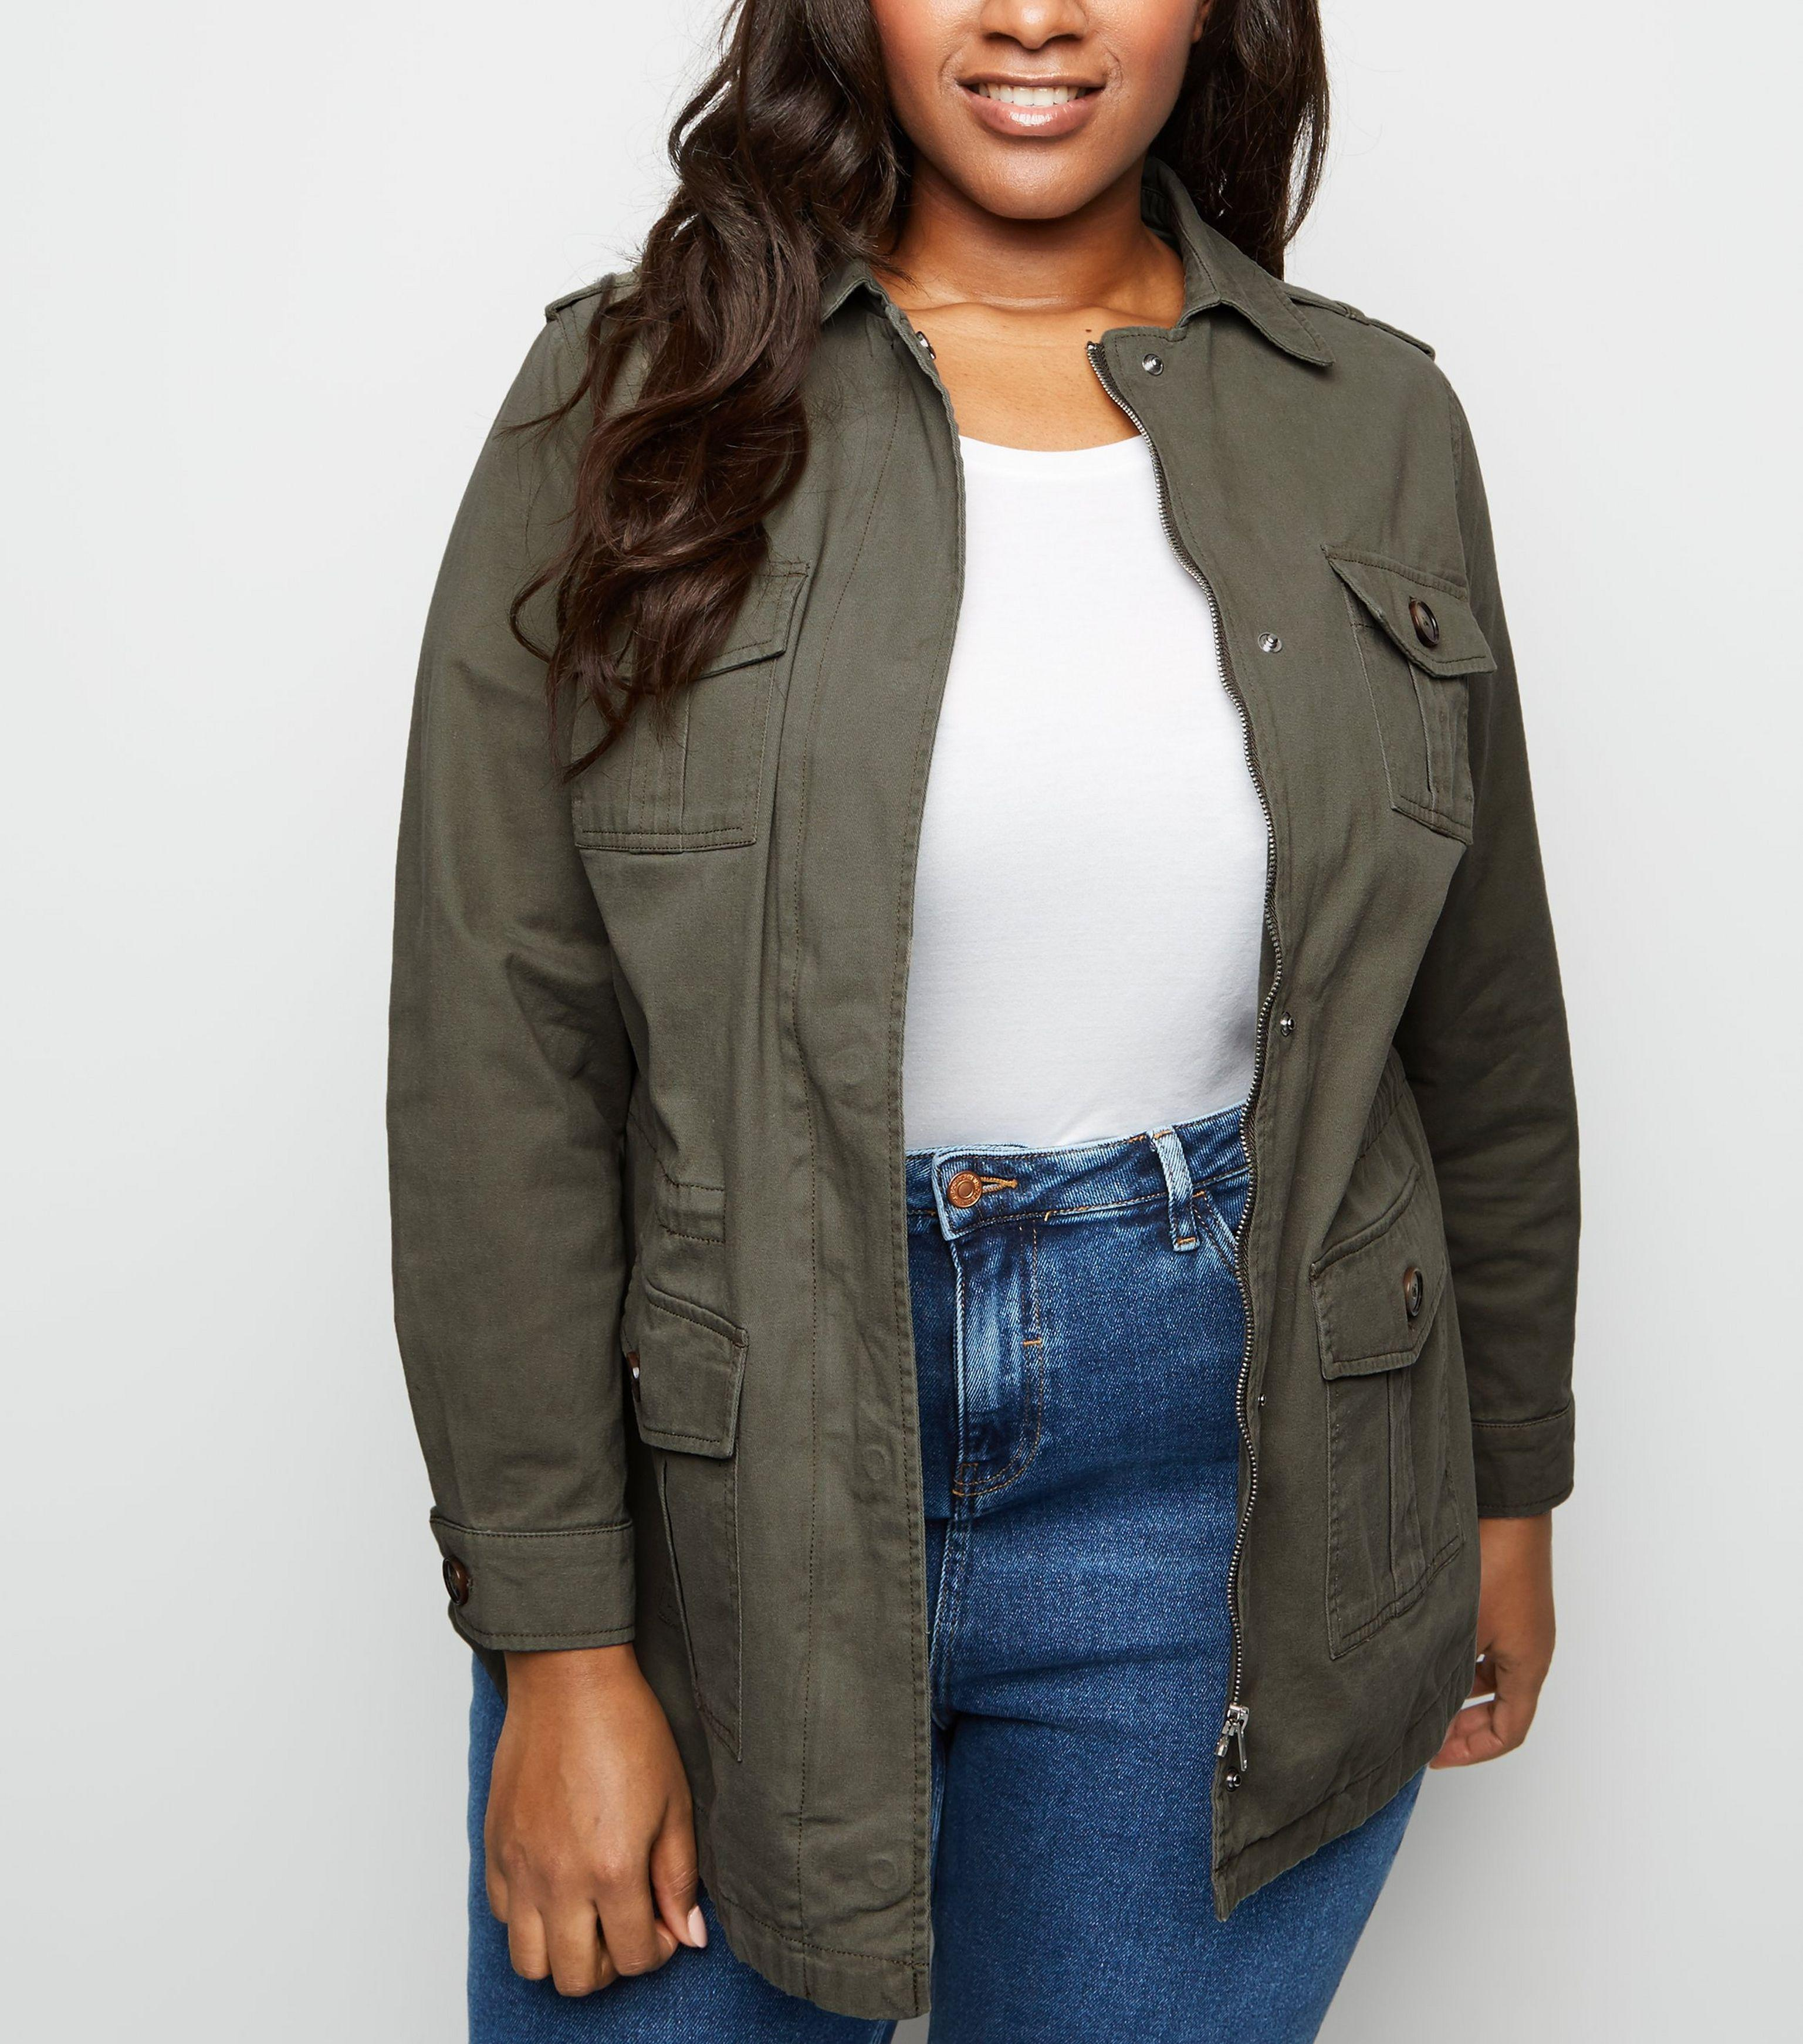 5fdf3b97a8f0 New Look Curves Khaki Utility Shacket in Natural - Lyst